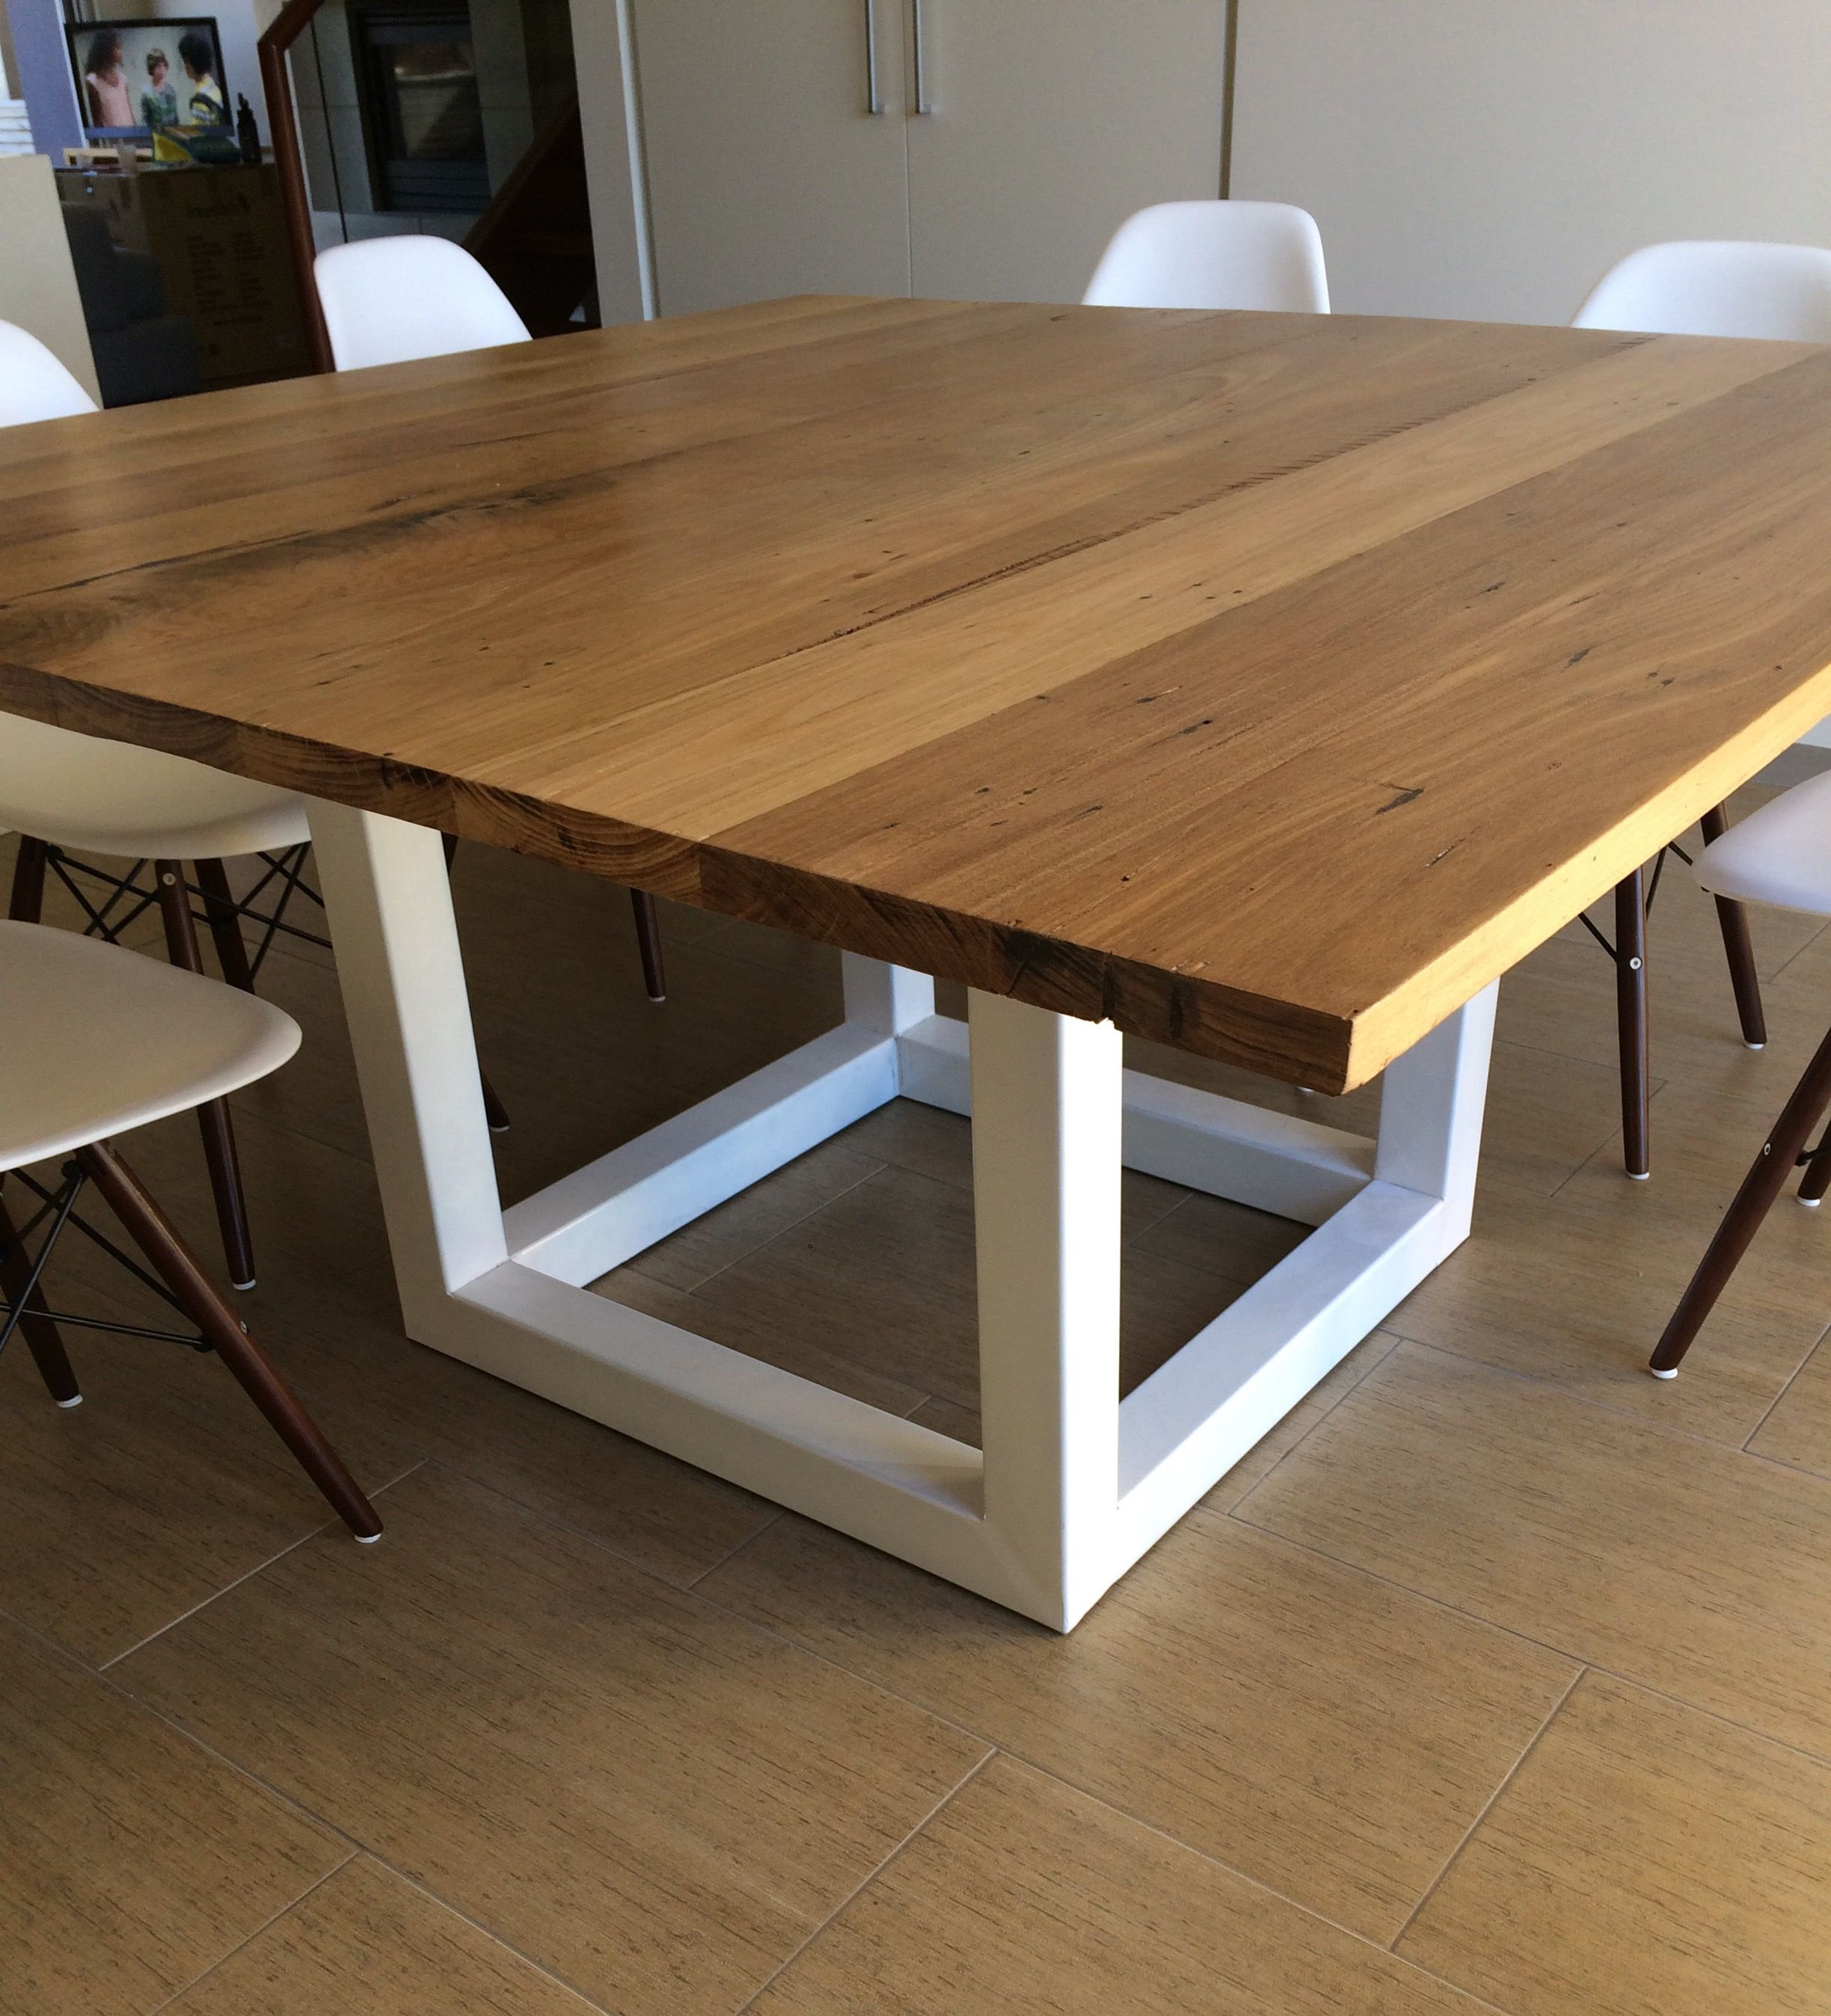 Recycled Messmate Timber Square Dining Table With White Metal Legs